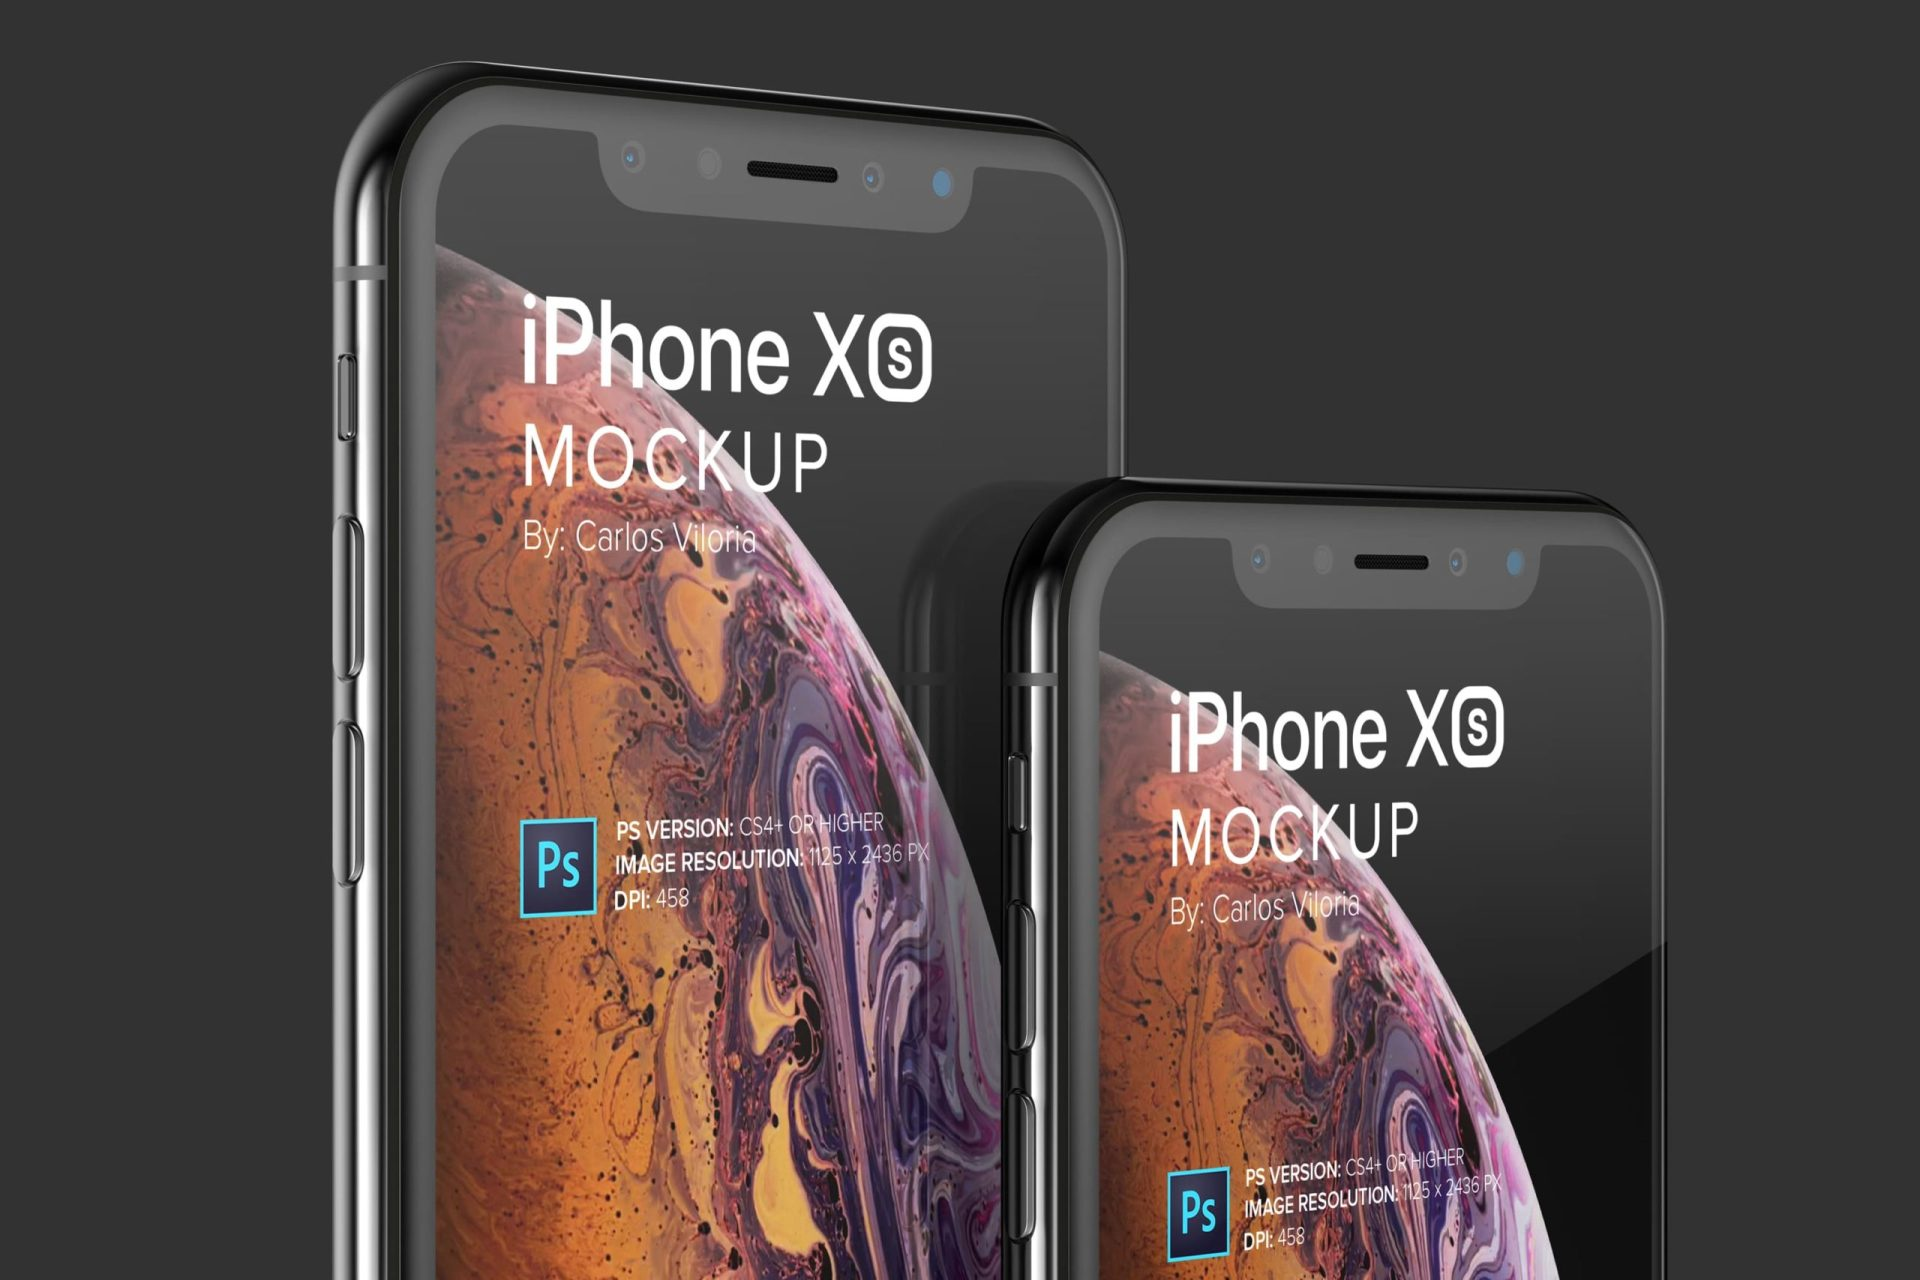 iPhone XS Mockup for Close Up Views